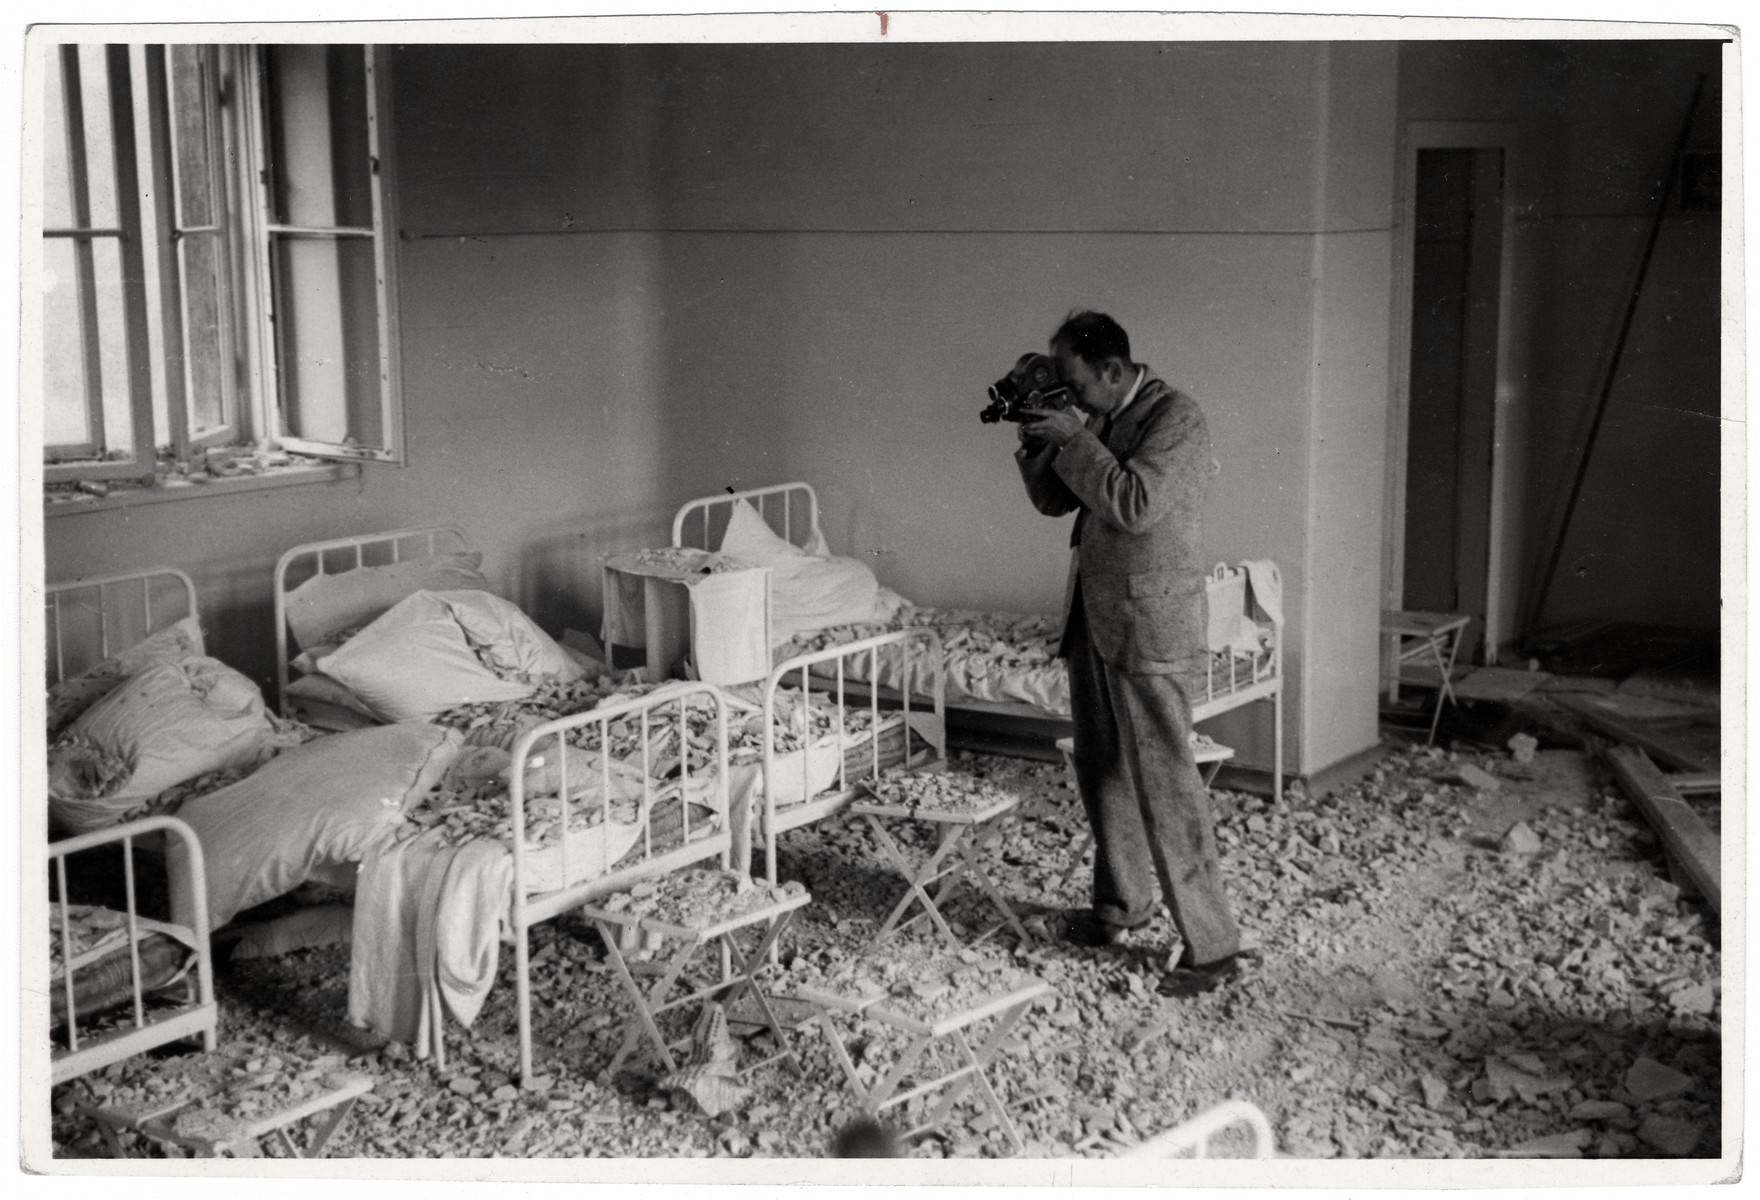 Film maker and photographer Julien Bryan films the destruction of one of Warsaw's largest hospitals: the Catholic Hospital of the Transfiguration.